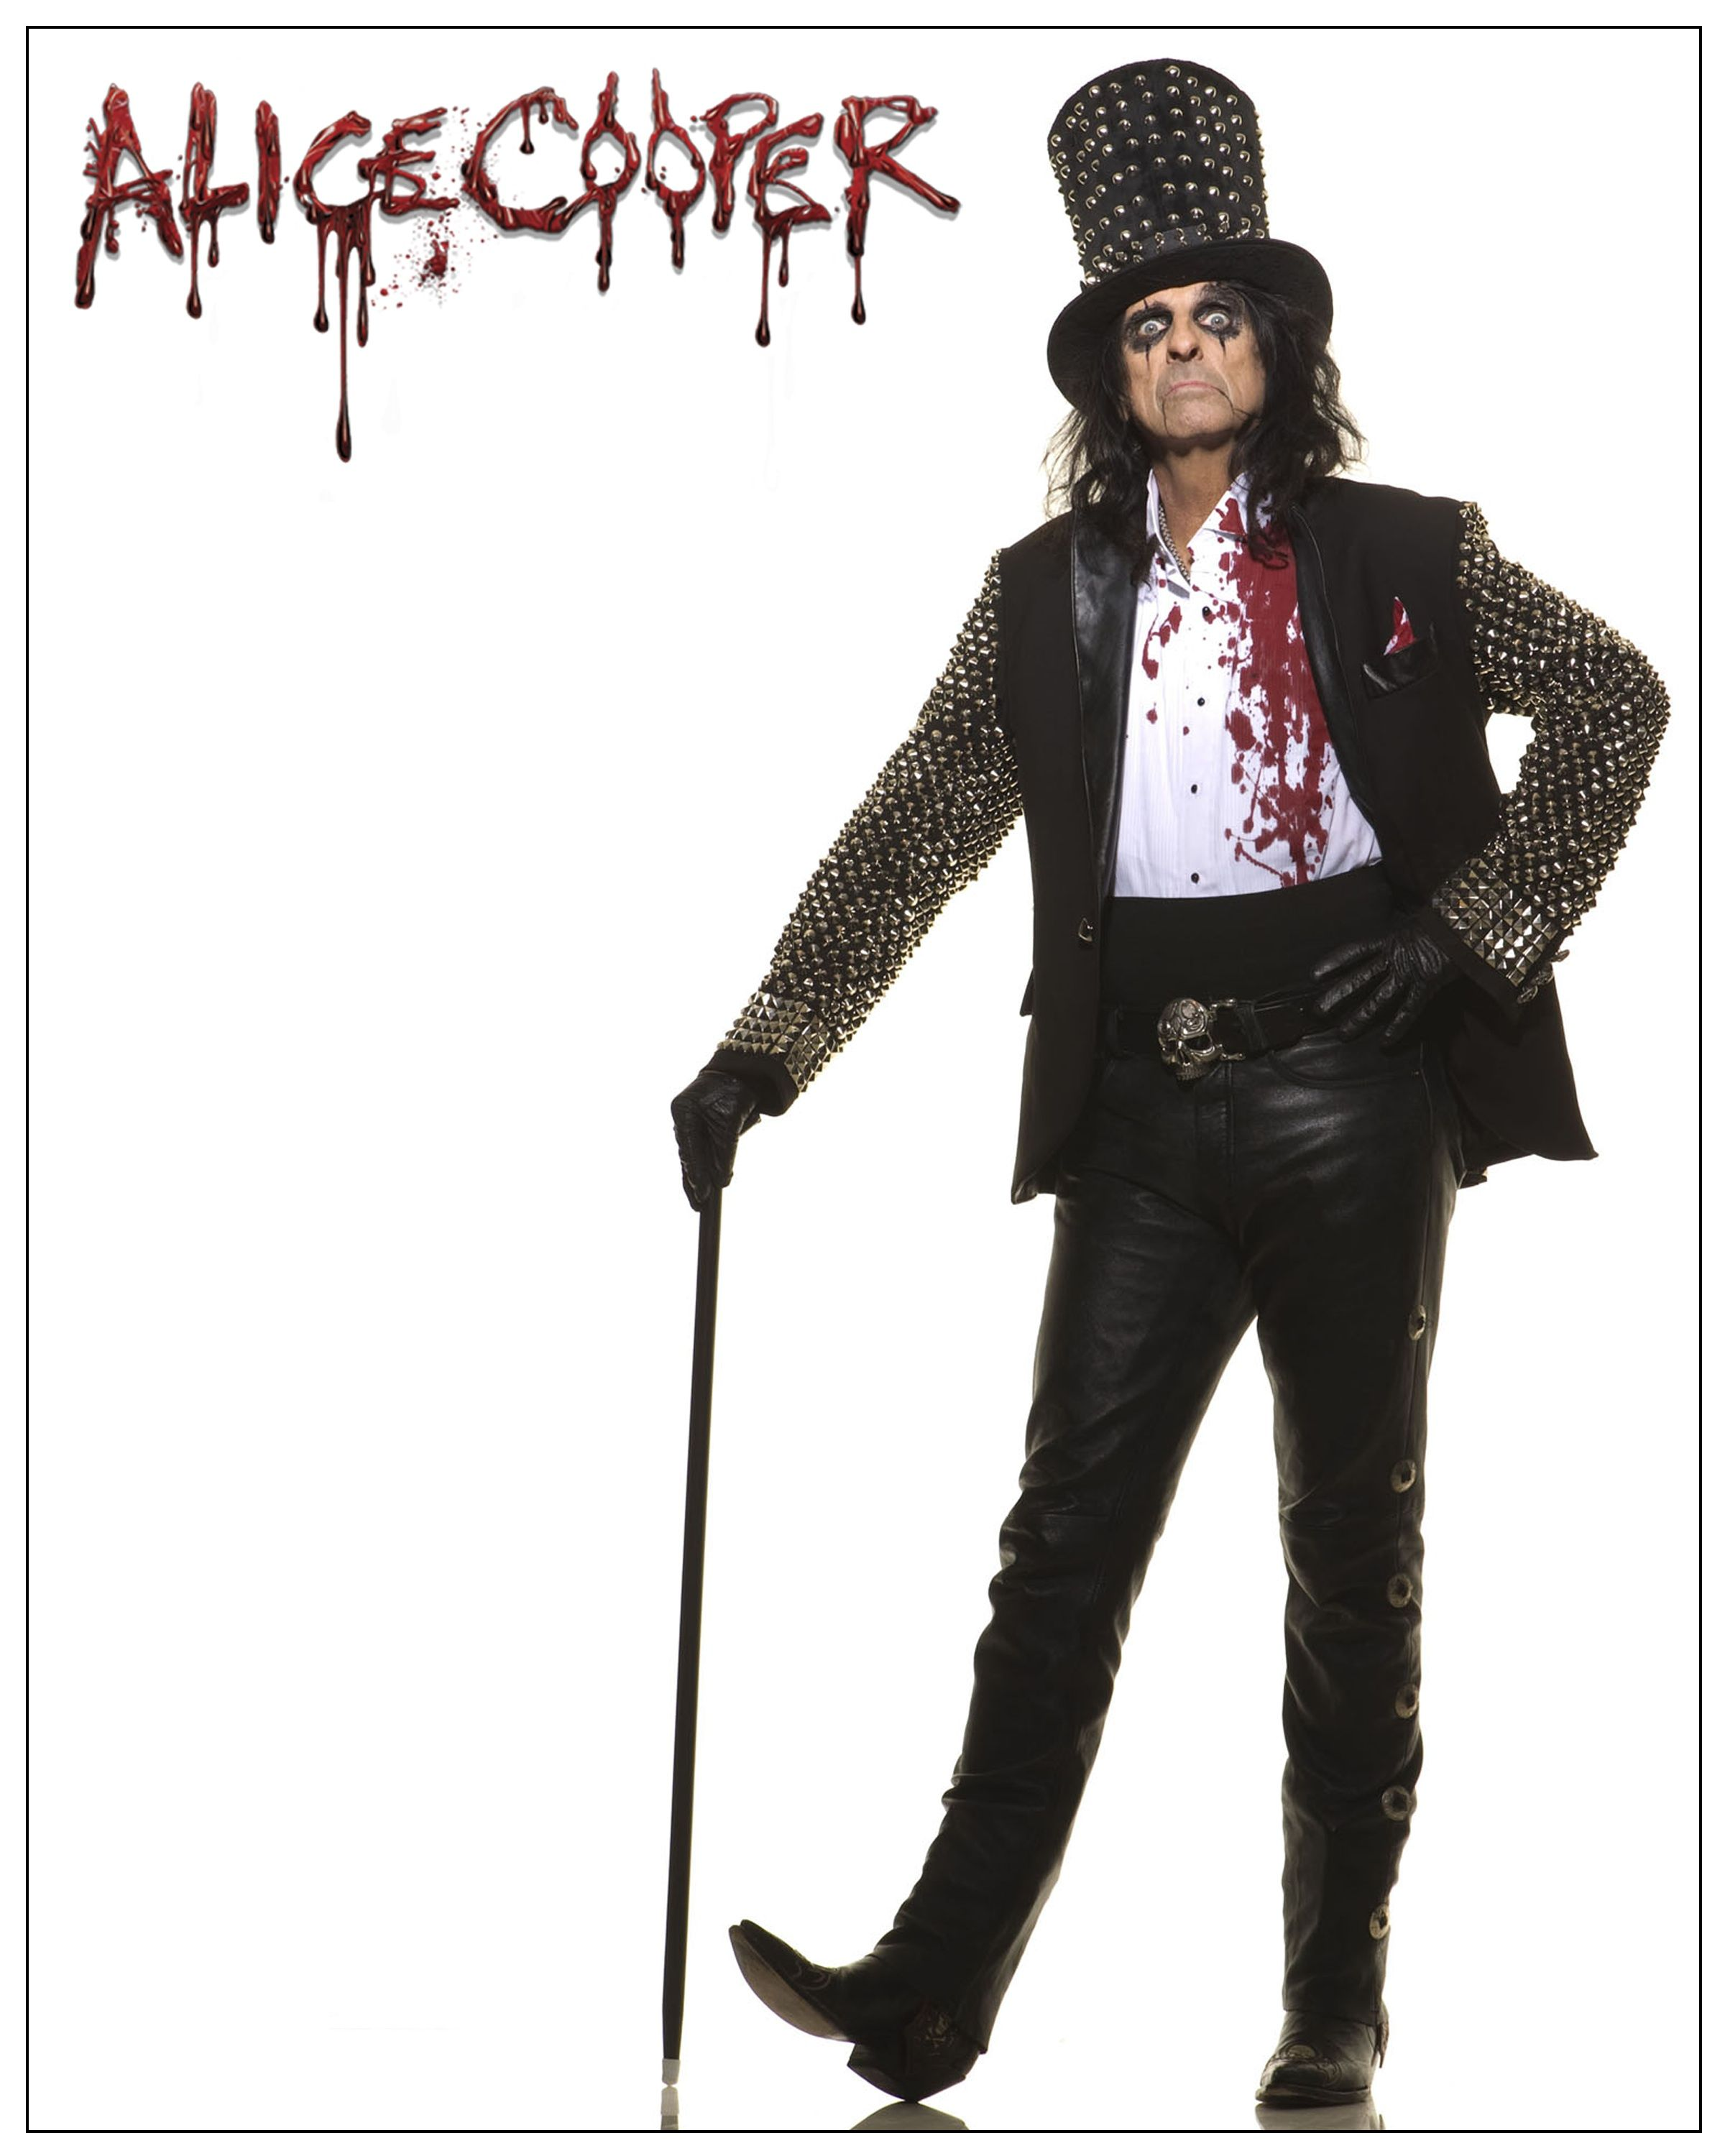 Alice cooper costume ideas